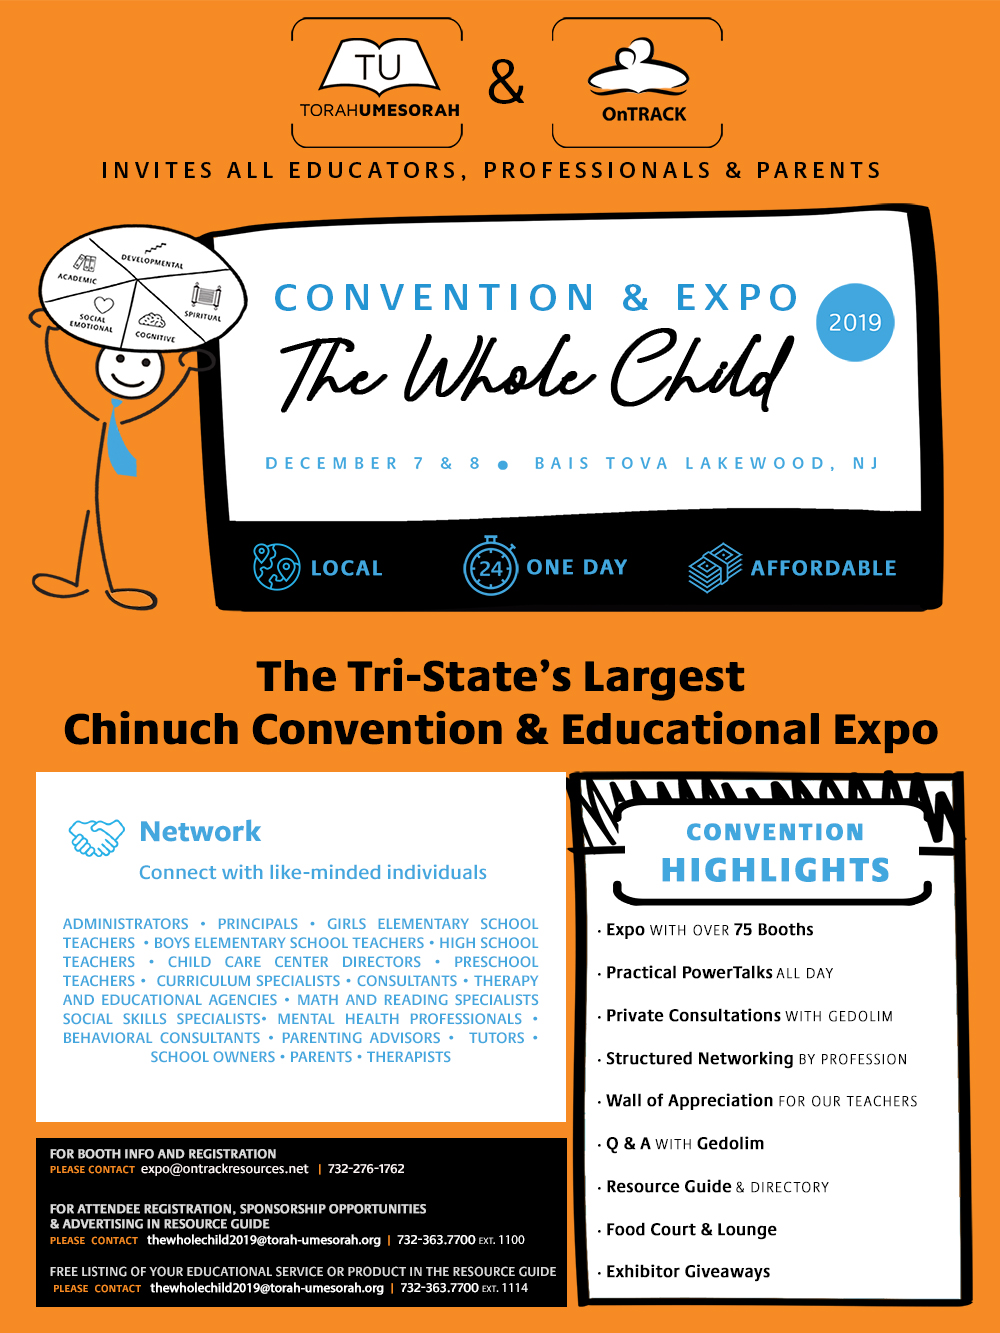 The Whole Child: Chinuch Convention & Educational Expo 2019